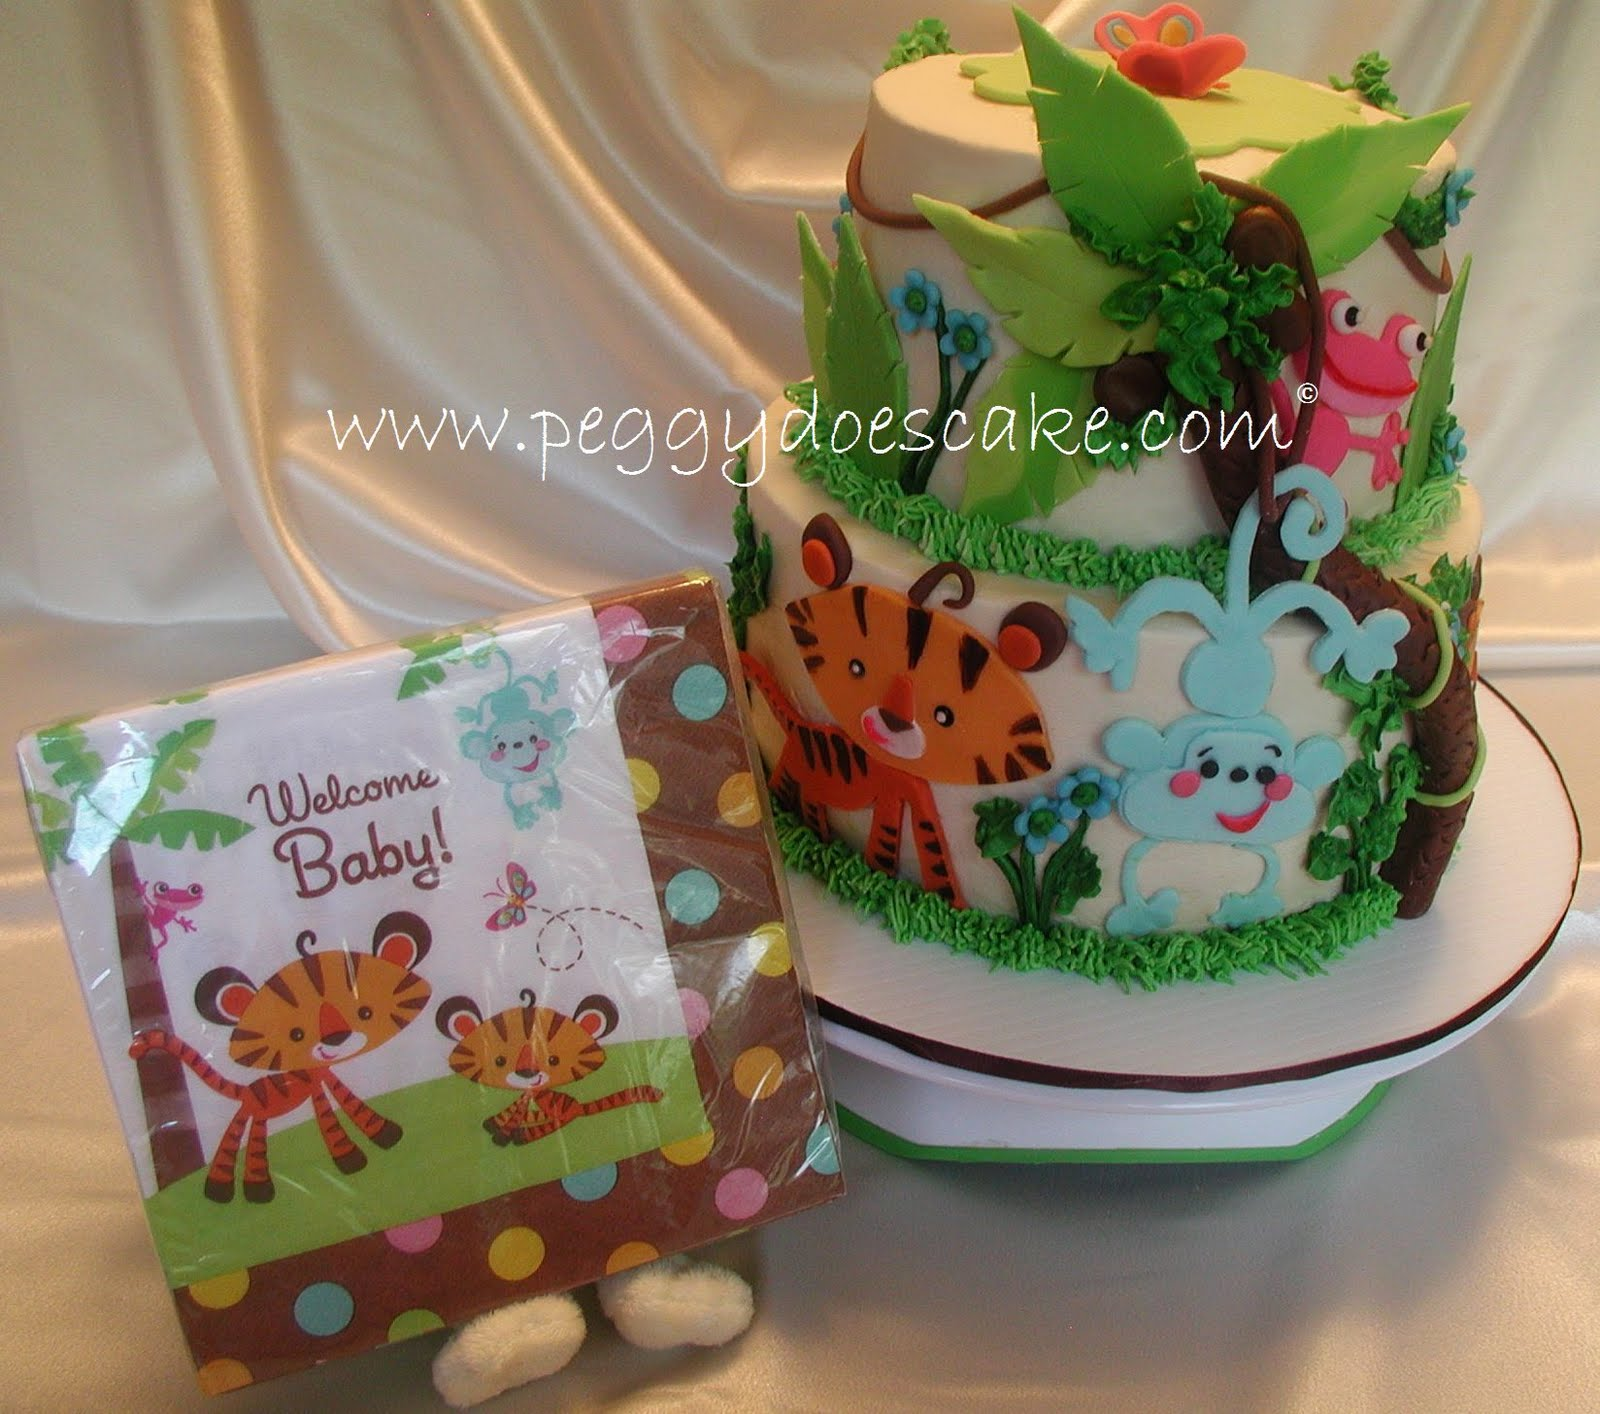 Mollyu0027s Fisher Price Rainforest Baby Shower Cake (click Photos To Enlarge).